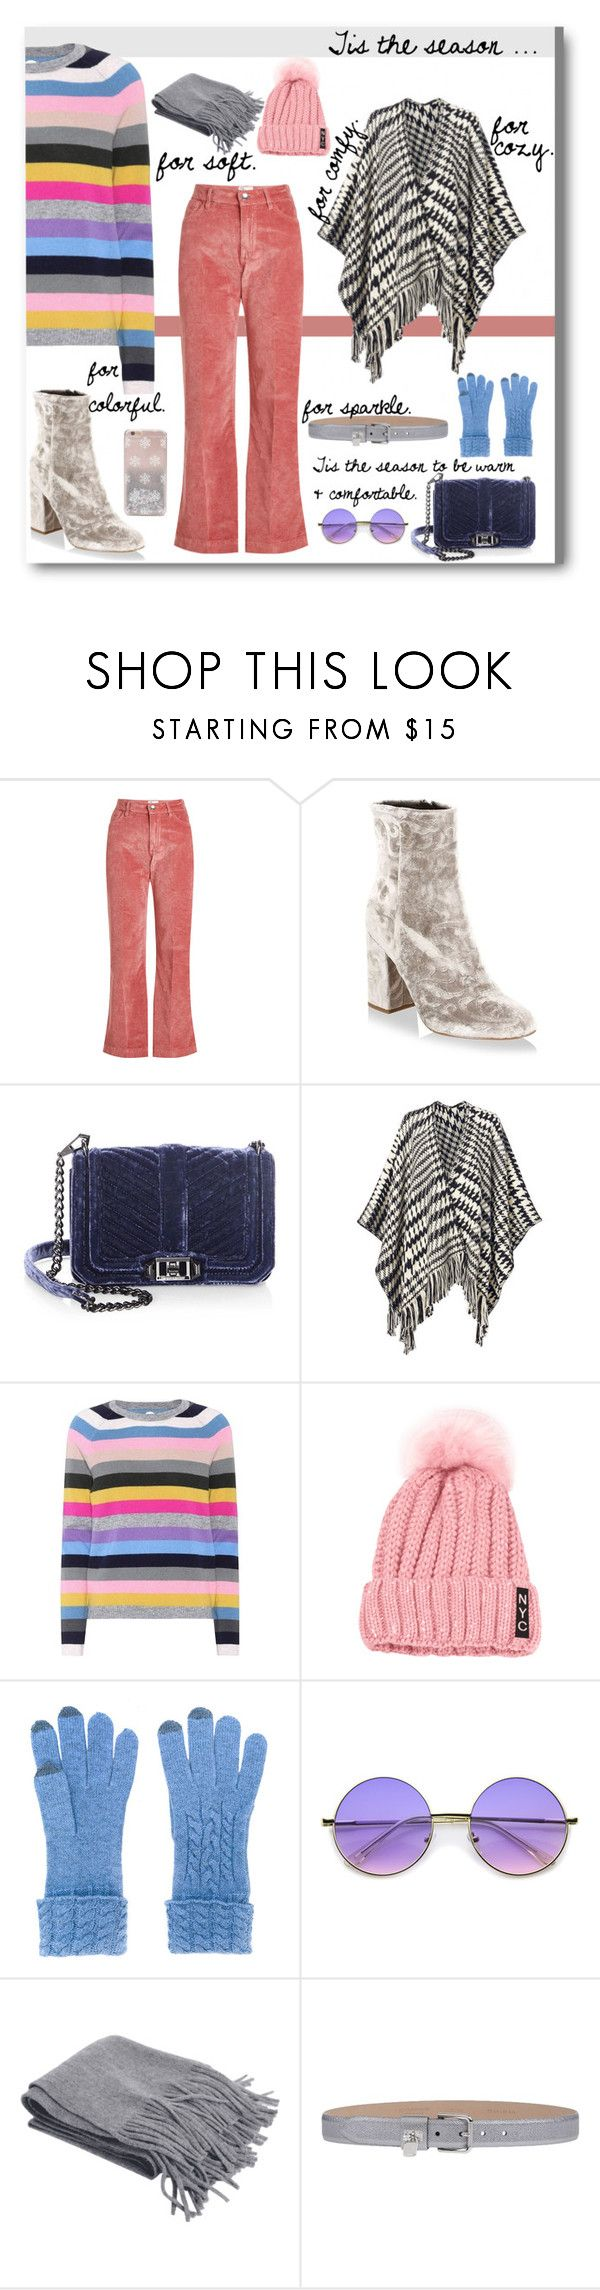 """""""Tis the Season for Warmth & Comfort"""" by rareworthy ❤ liked on Polyvore featuring The Seafarer, Rebecca Minkoff, Pooltrend, Jardin des Orangers, N.Peal, ZeroUV, Dolce&Gabbana and Forever 21"""